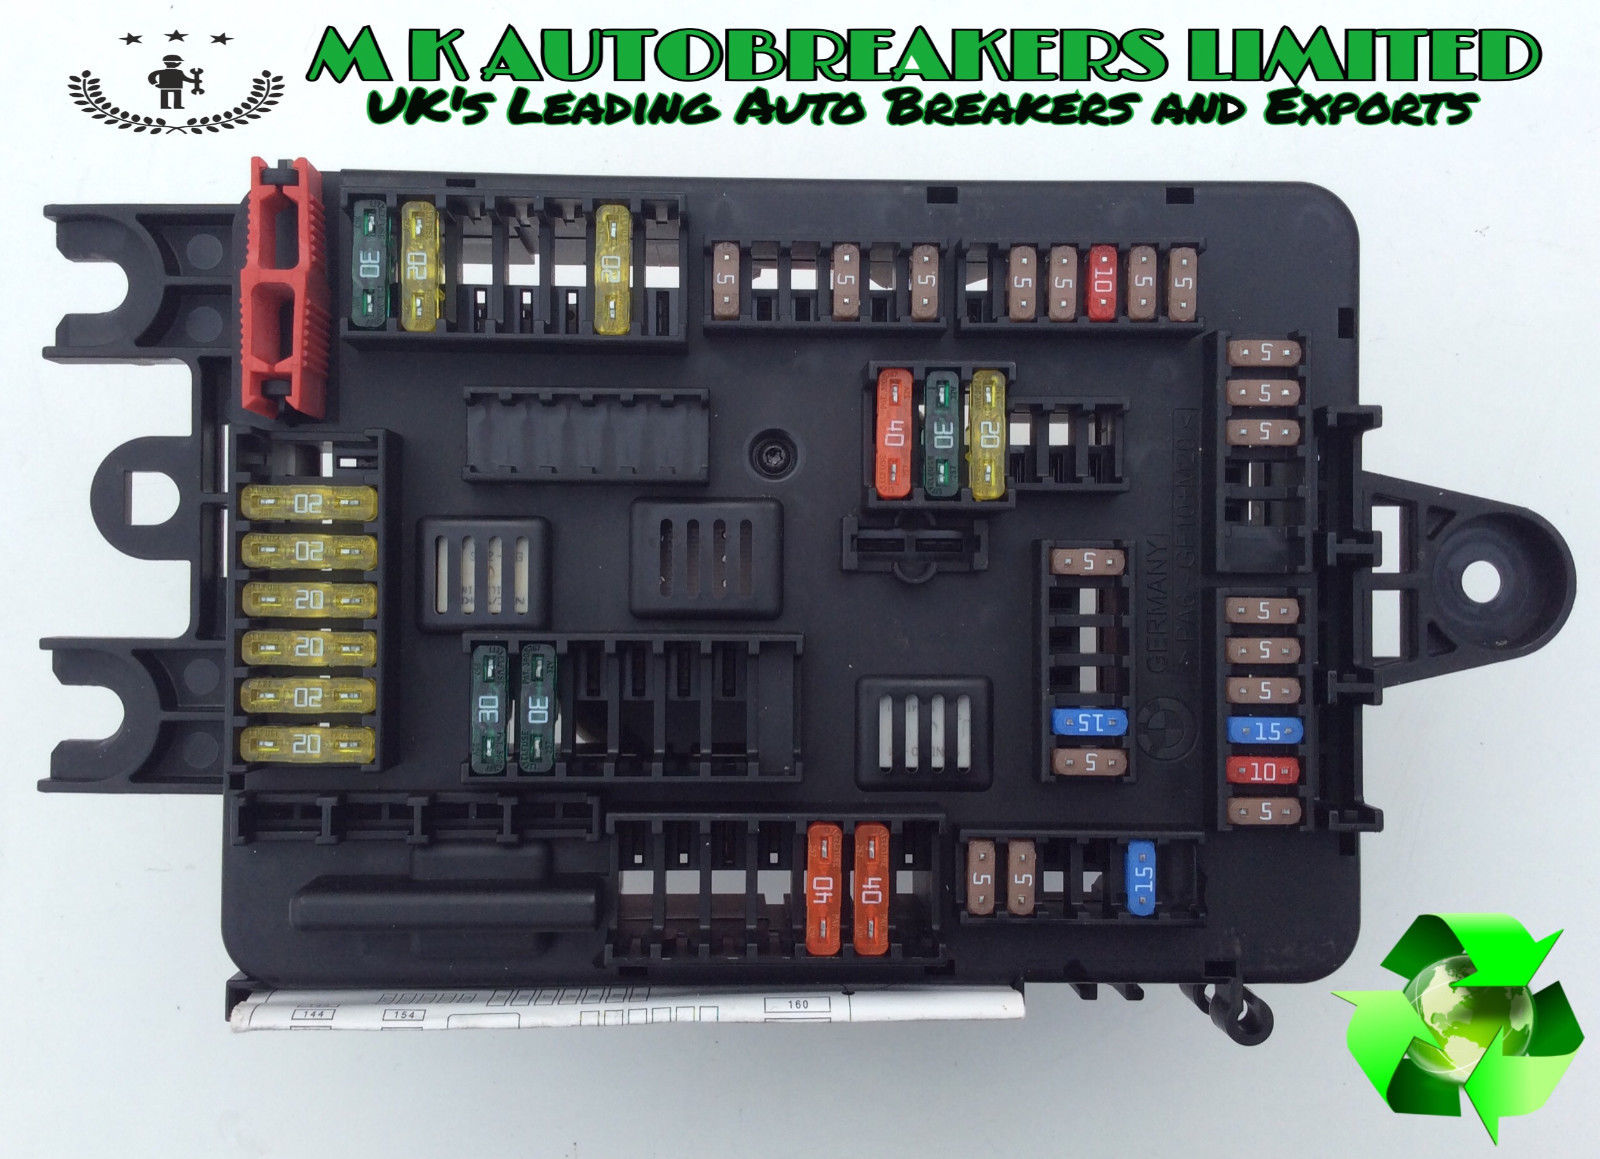 Bmw E90 Fuse Box Spares Explained Wiring Diagrams BMW E92 Fuse Box Bmw E90  Fuse Box Spares